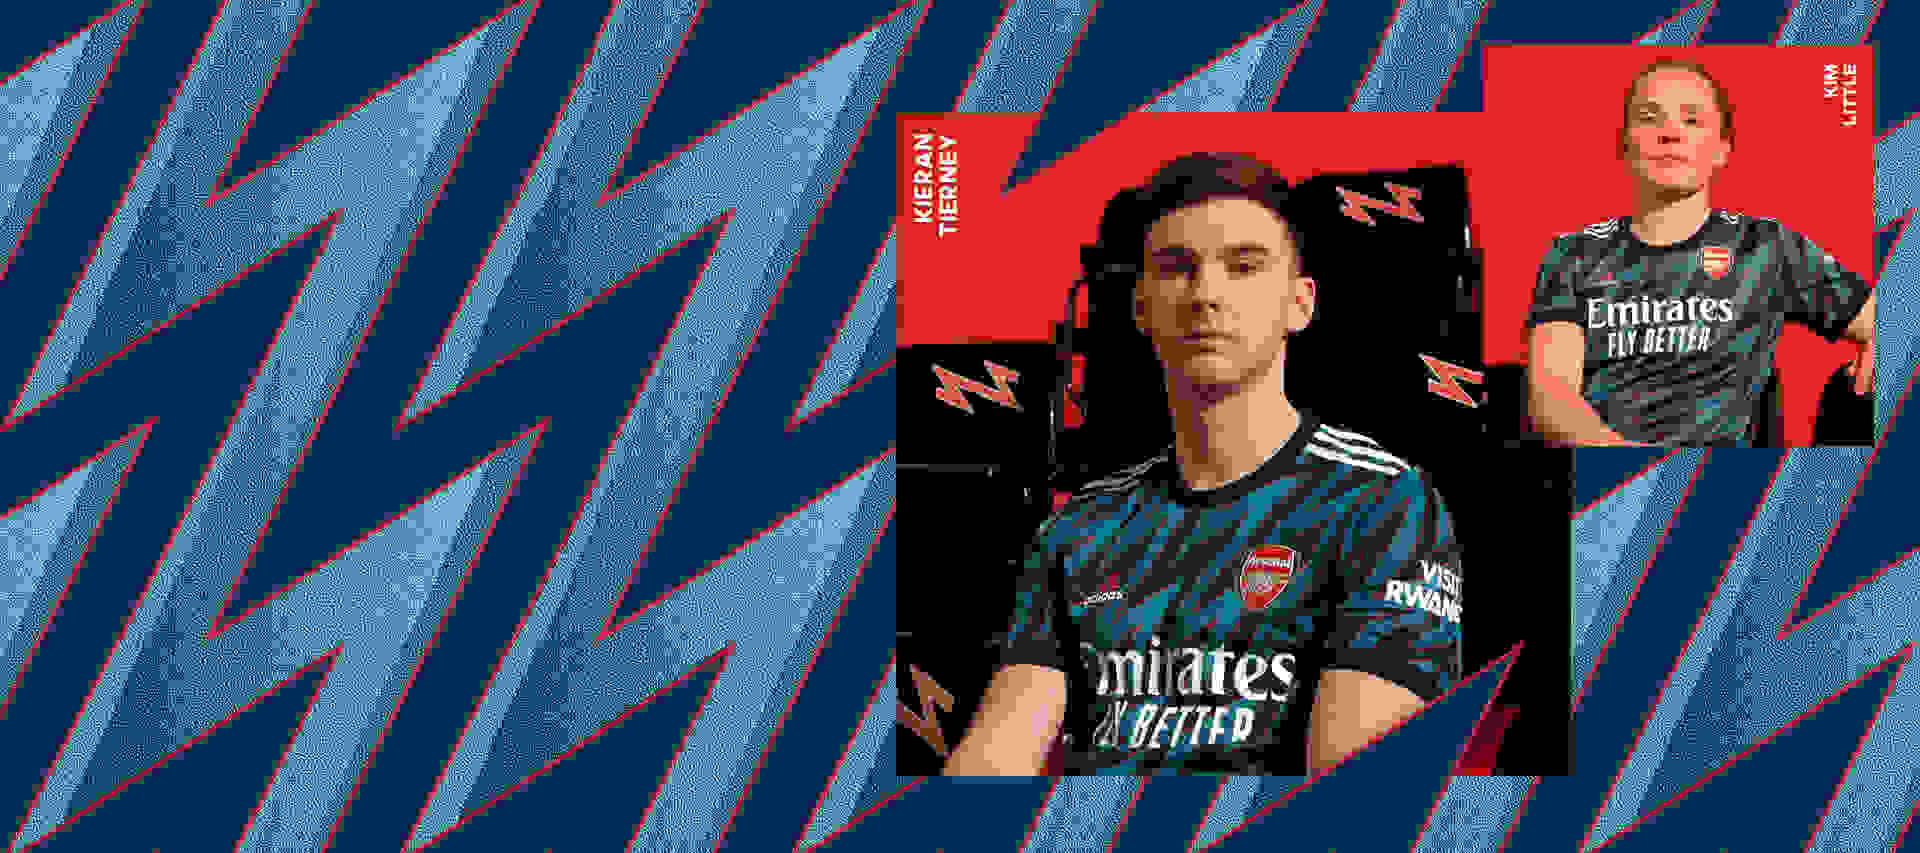 A male player and female player wearing the Arsenal Third Kit